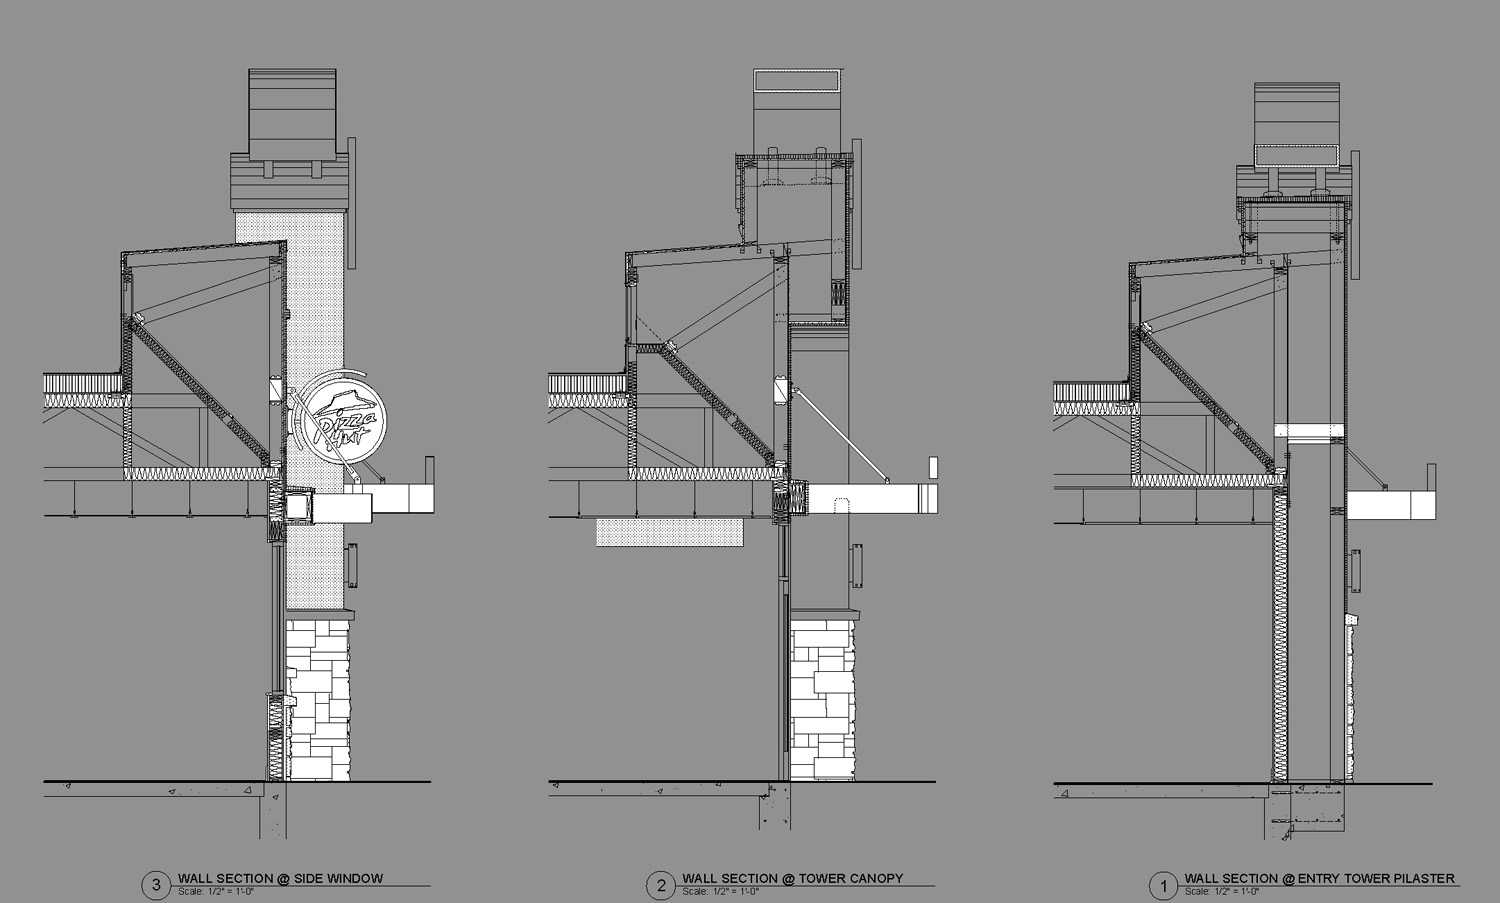 Taco Bell-15-Remodel-Wall Sections.jpg